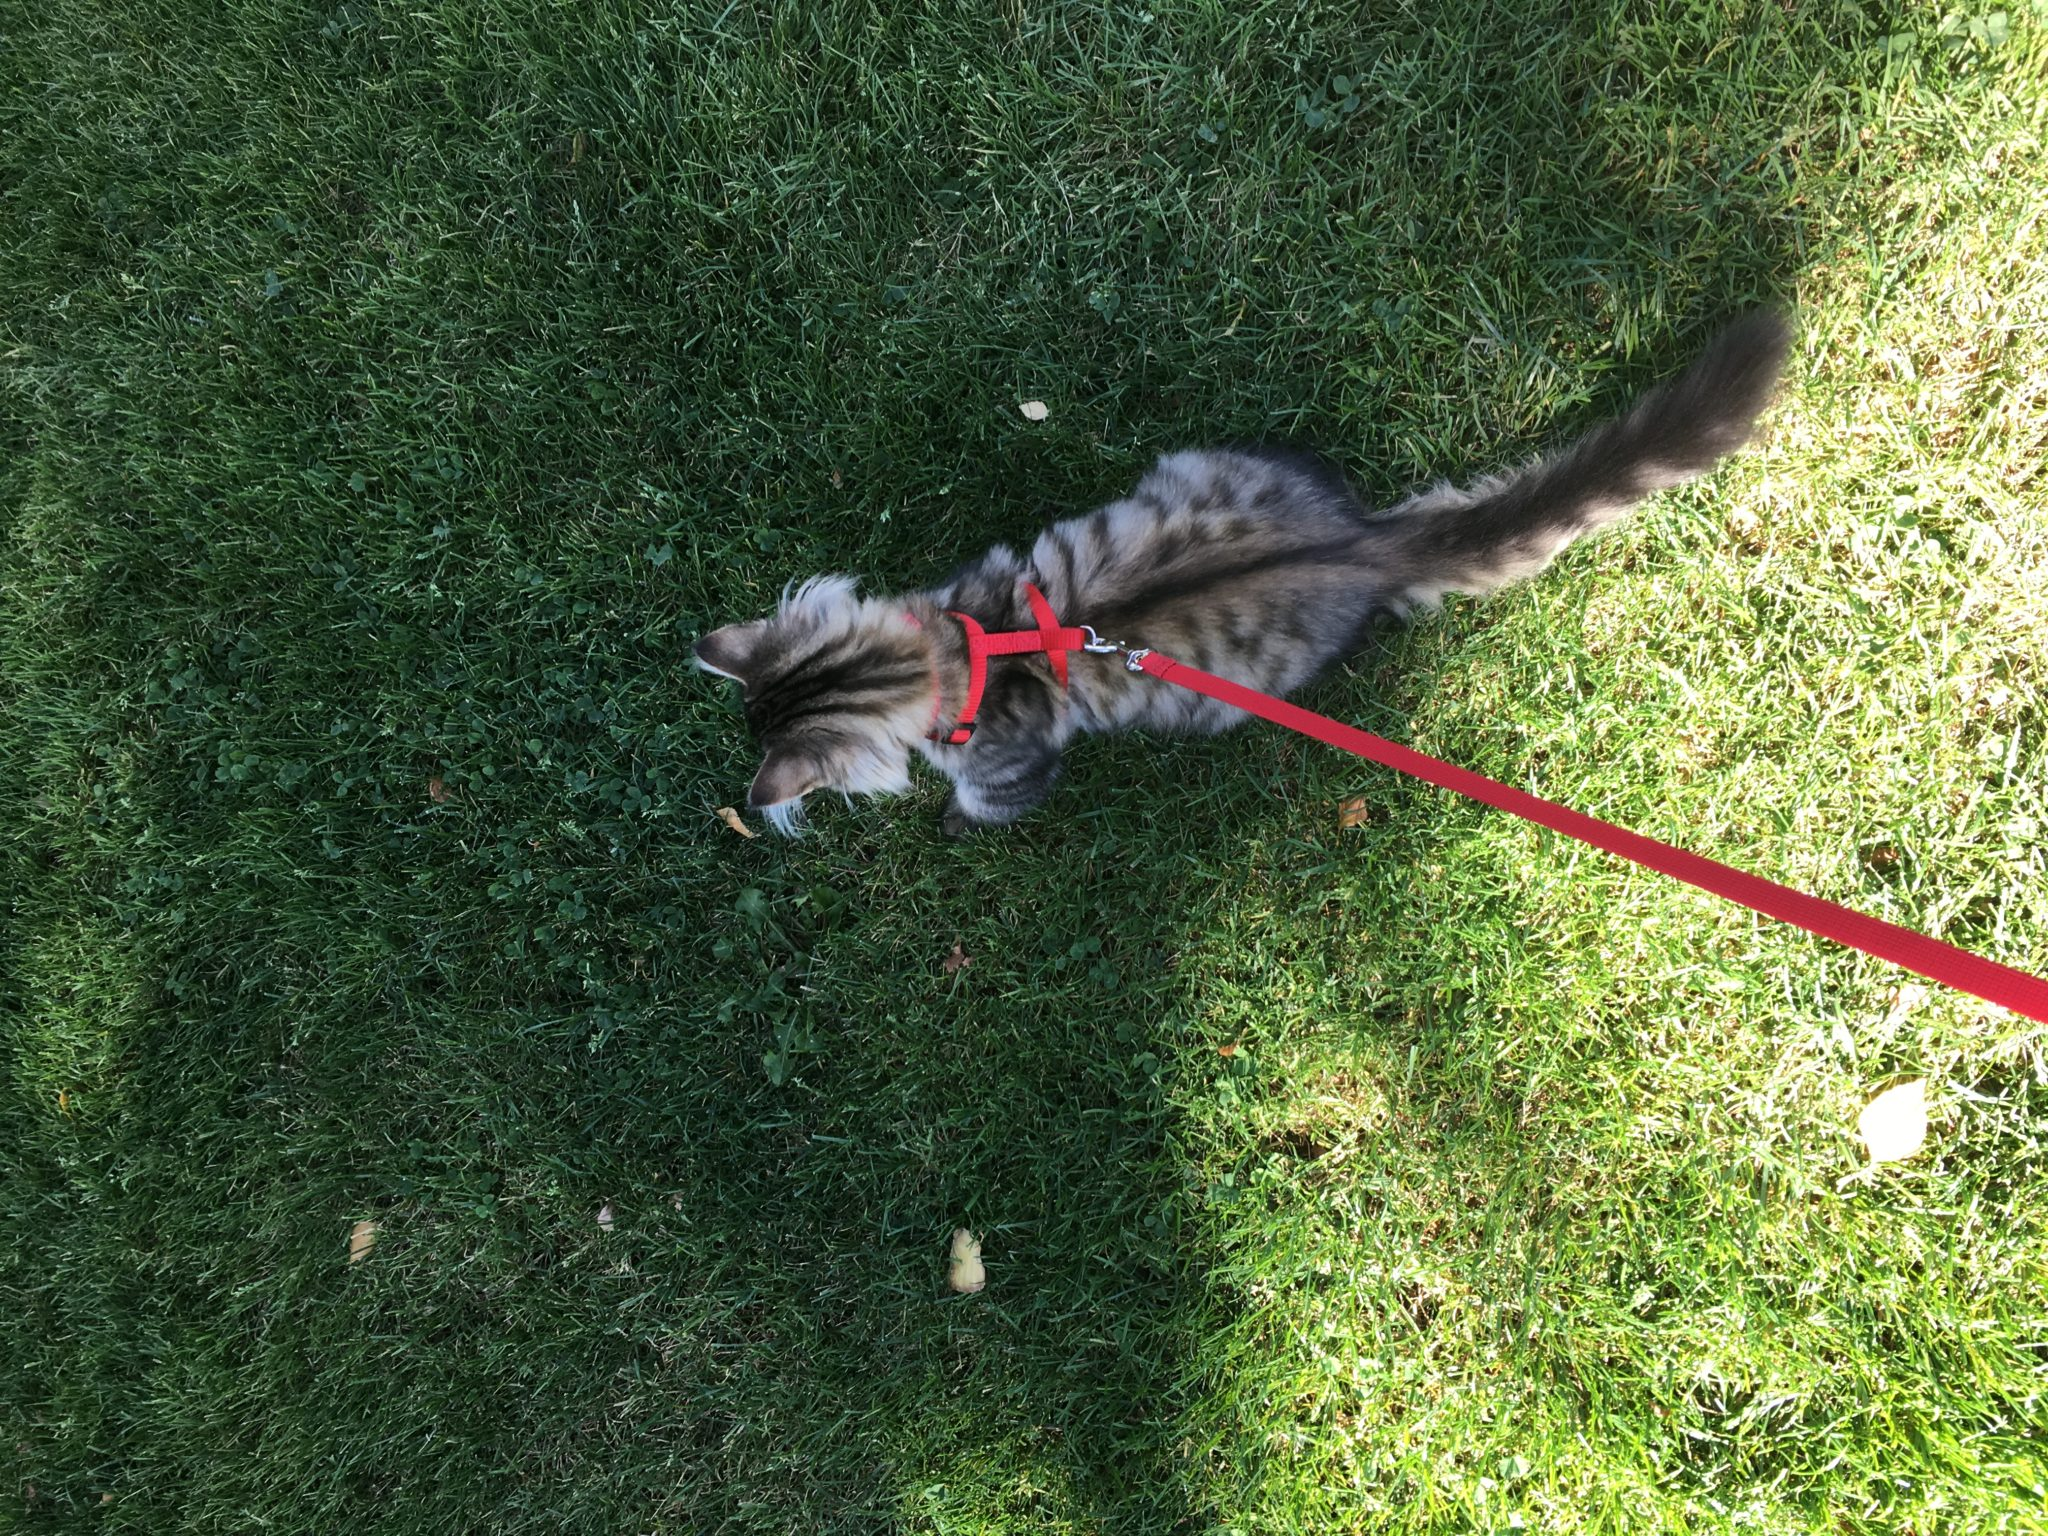 McKinely the kitten on a leash